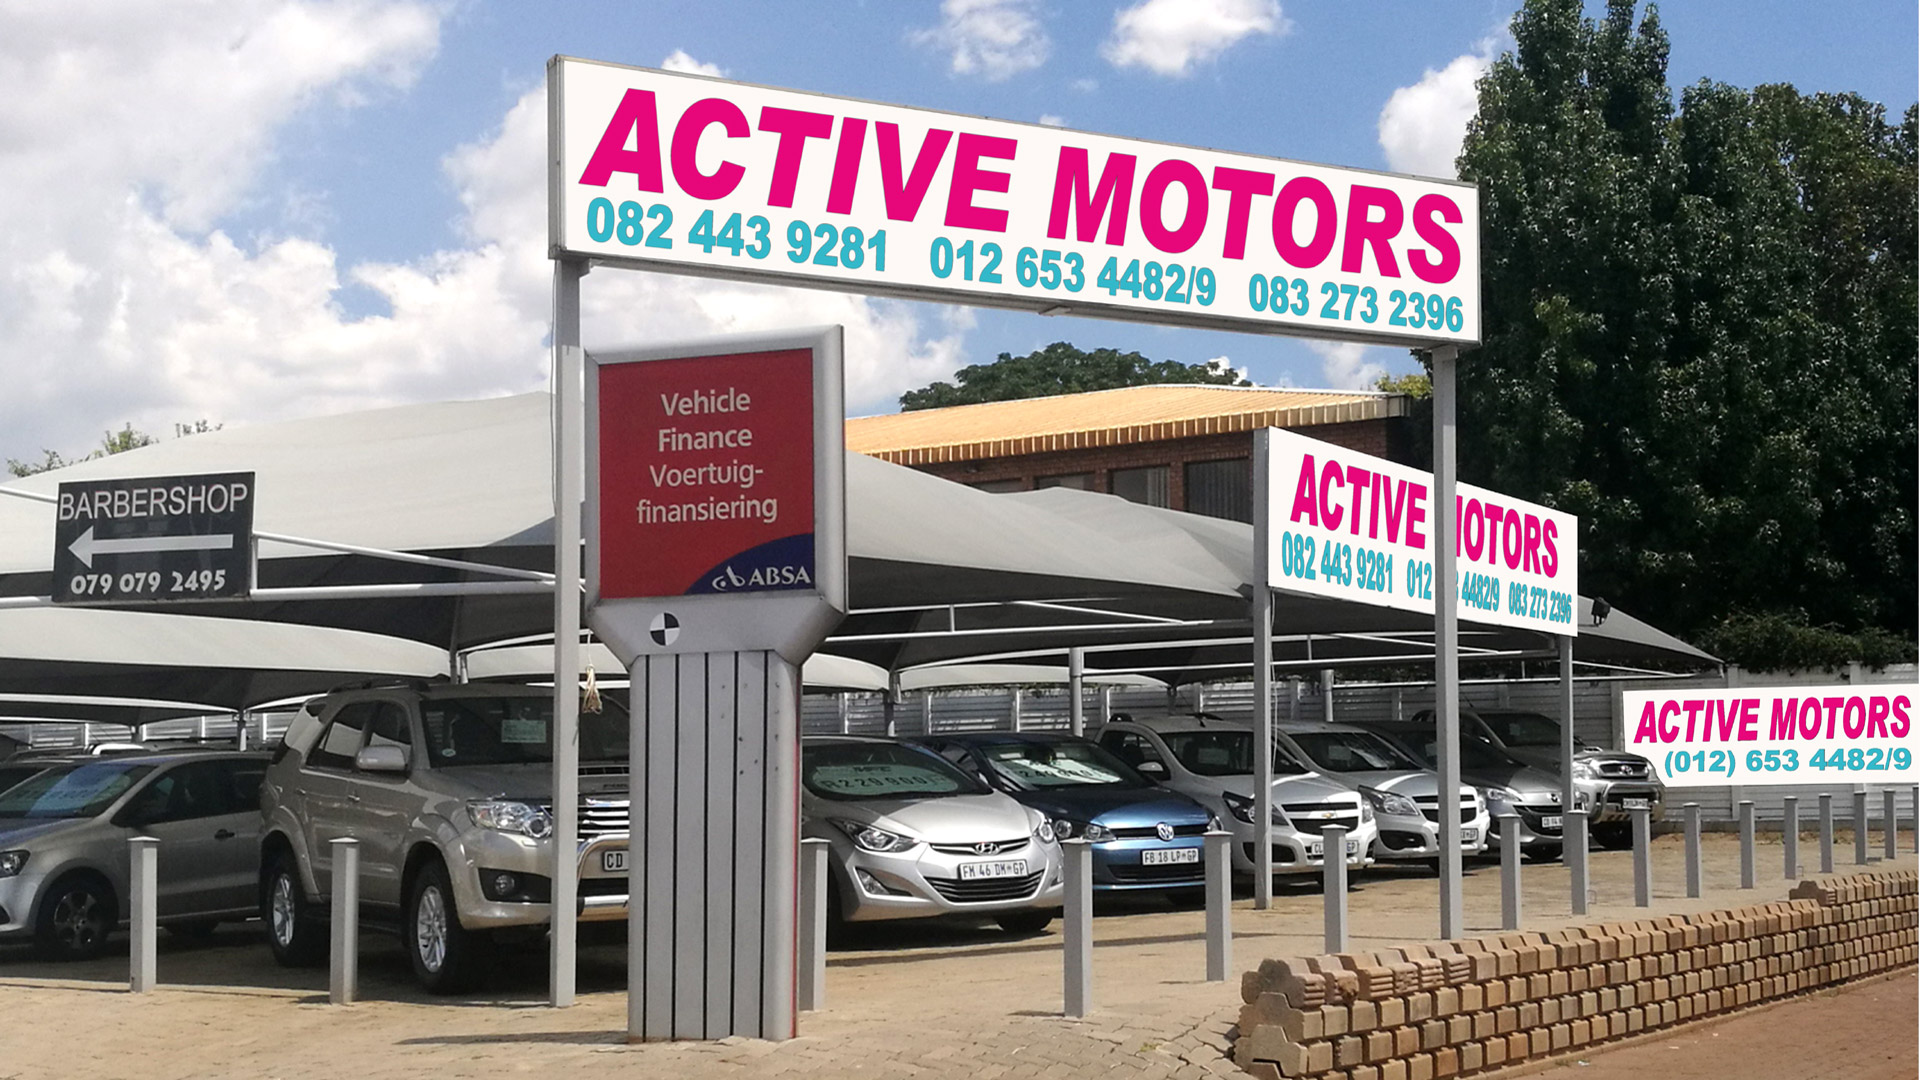 Active Motors - Used Cars for Sale in Centurion